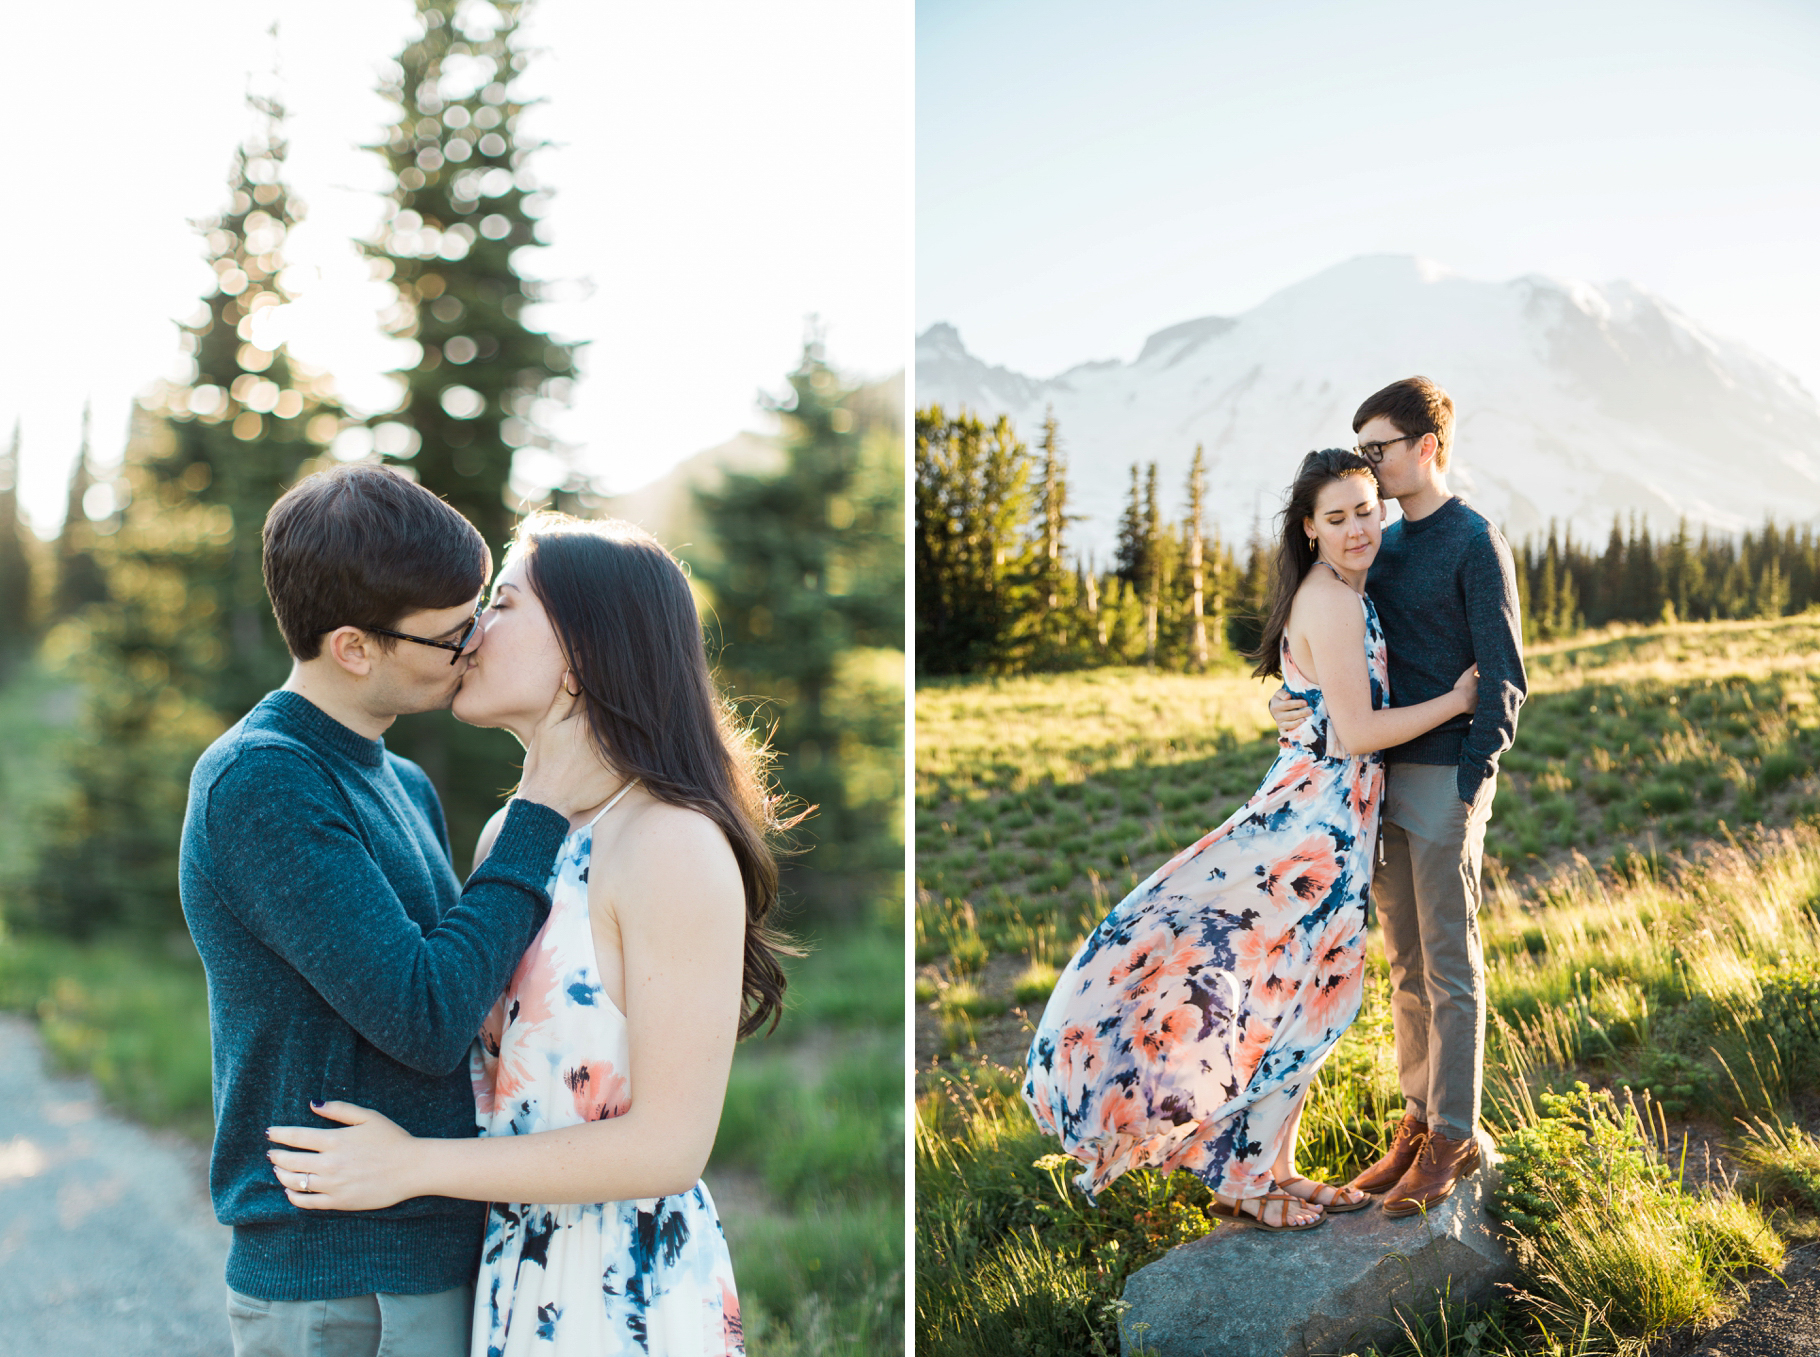 23-Mt-Rianier-Photography-Anniversary-Session-Adventure-Hiking-Seattle-Wedding-Photographer